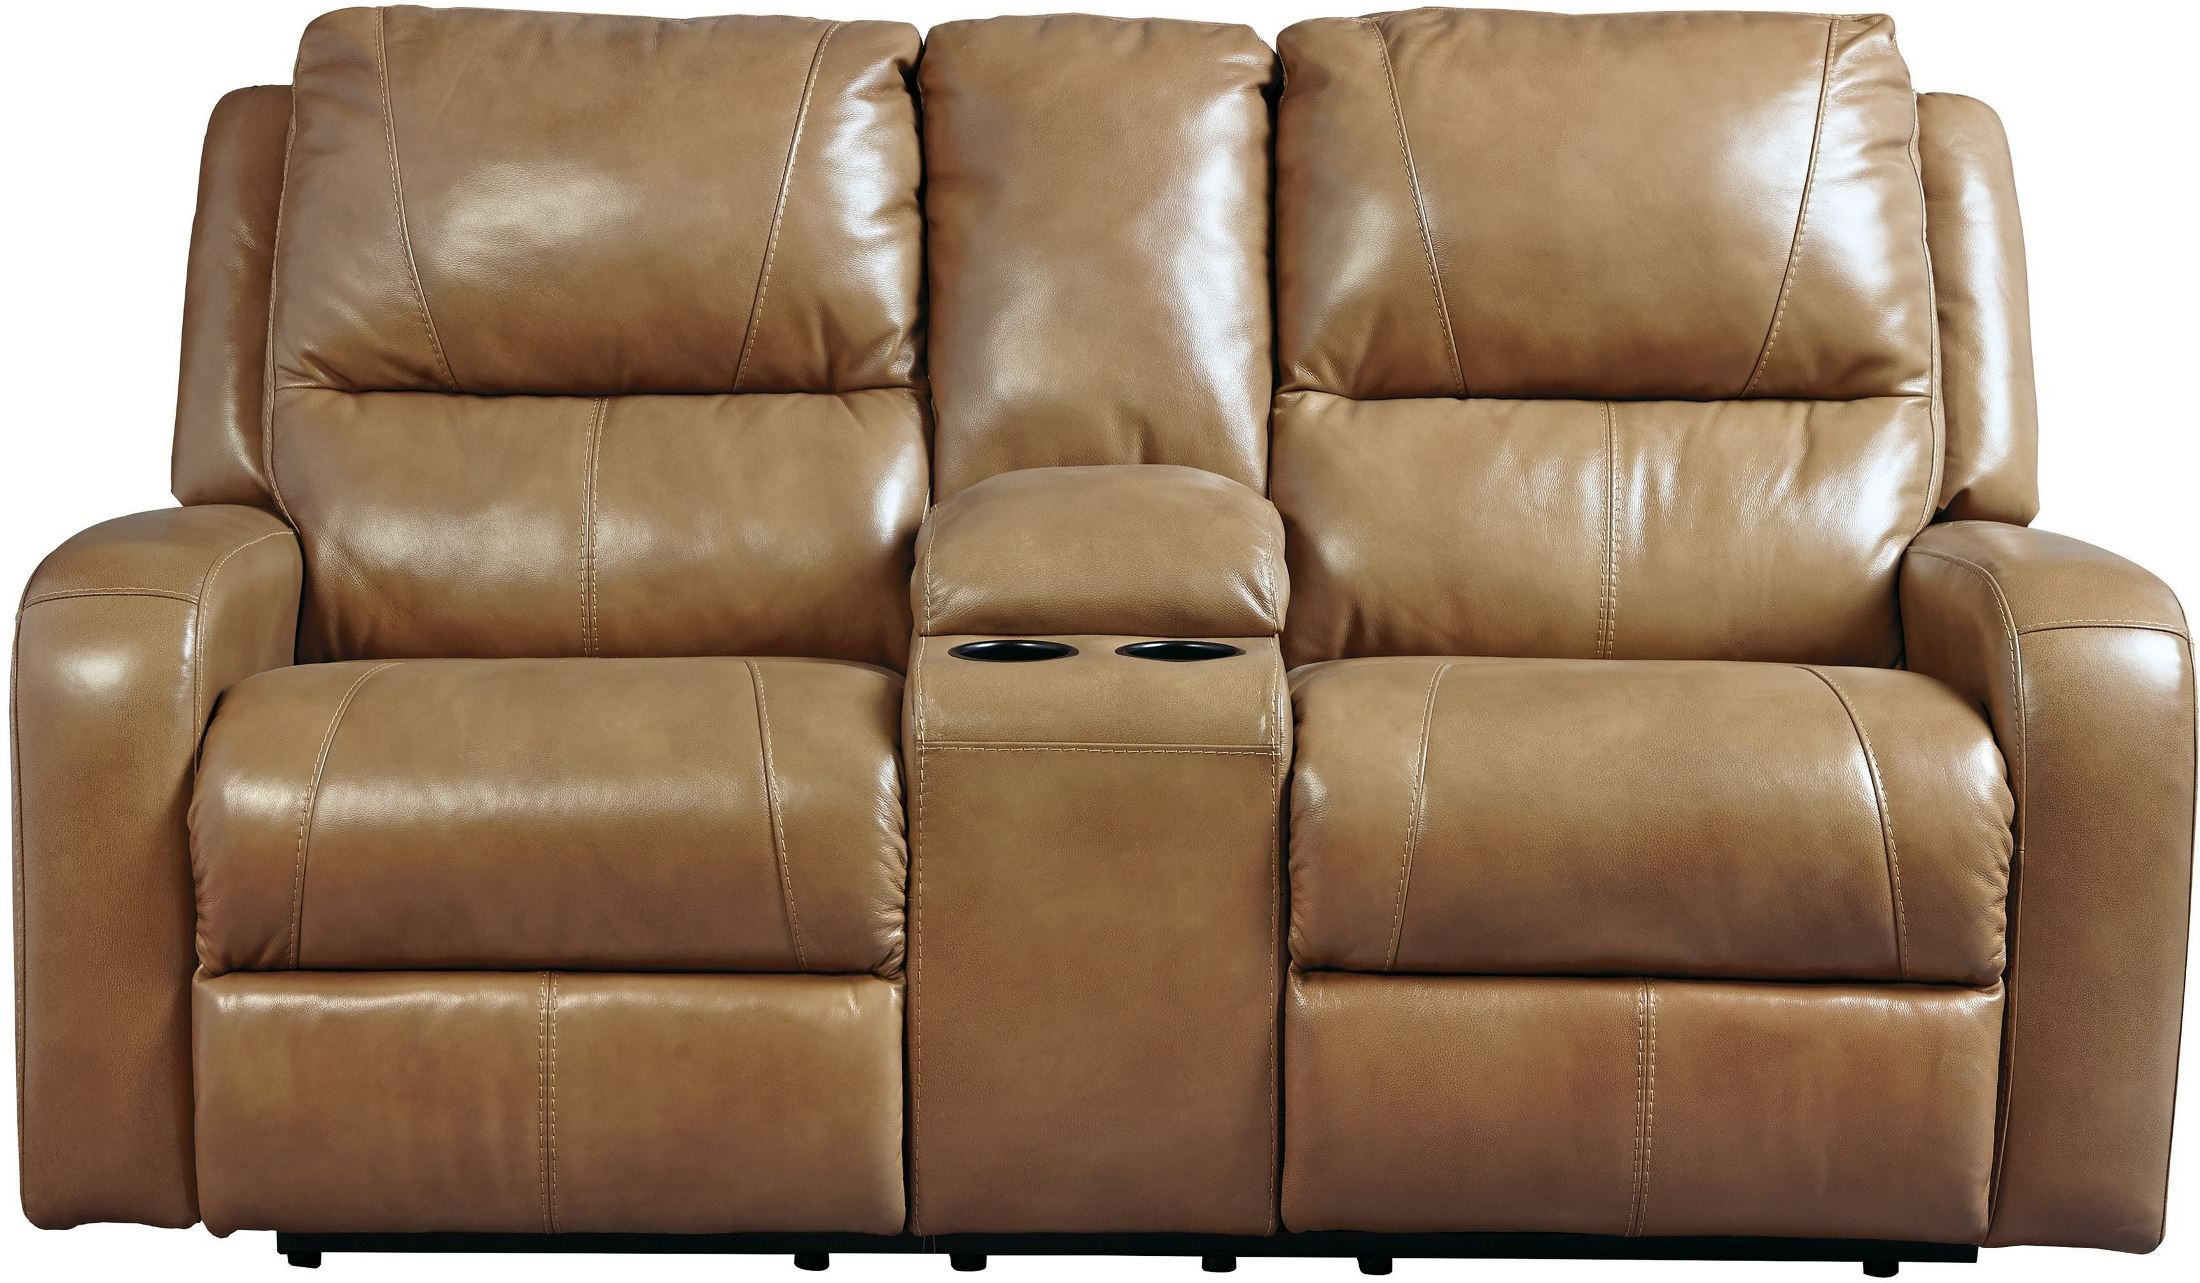 Roogan Blondie Double Reclining Console Loveseat U6070194 Ashley